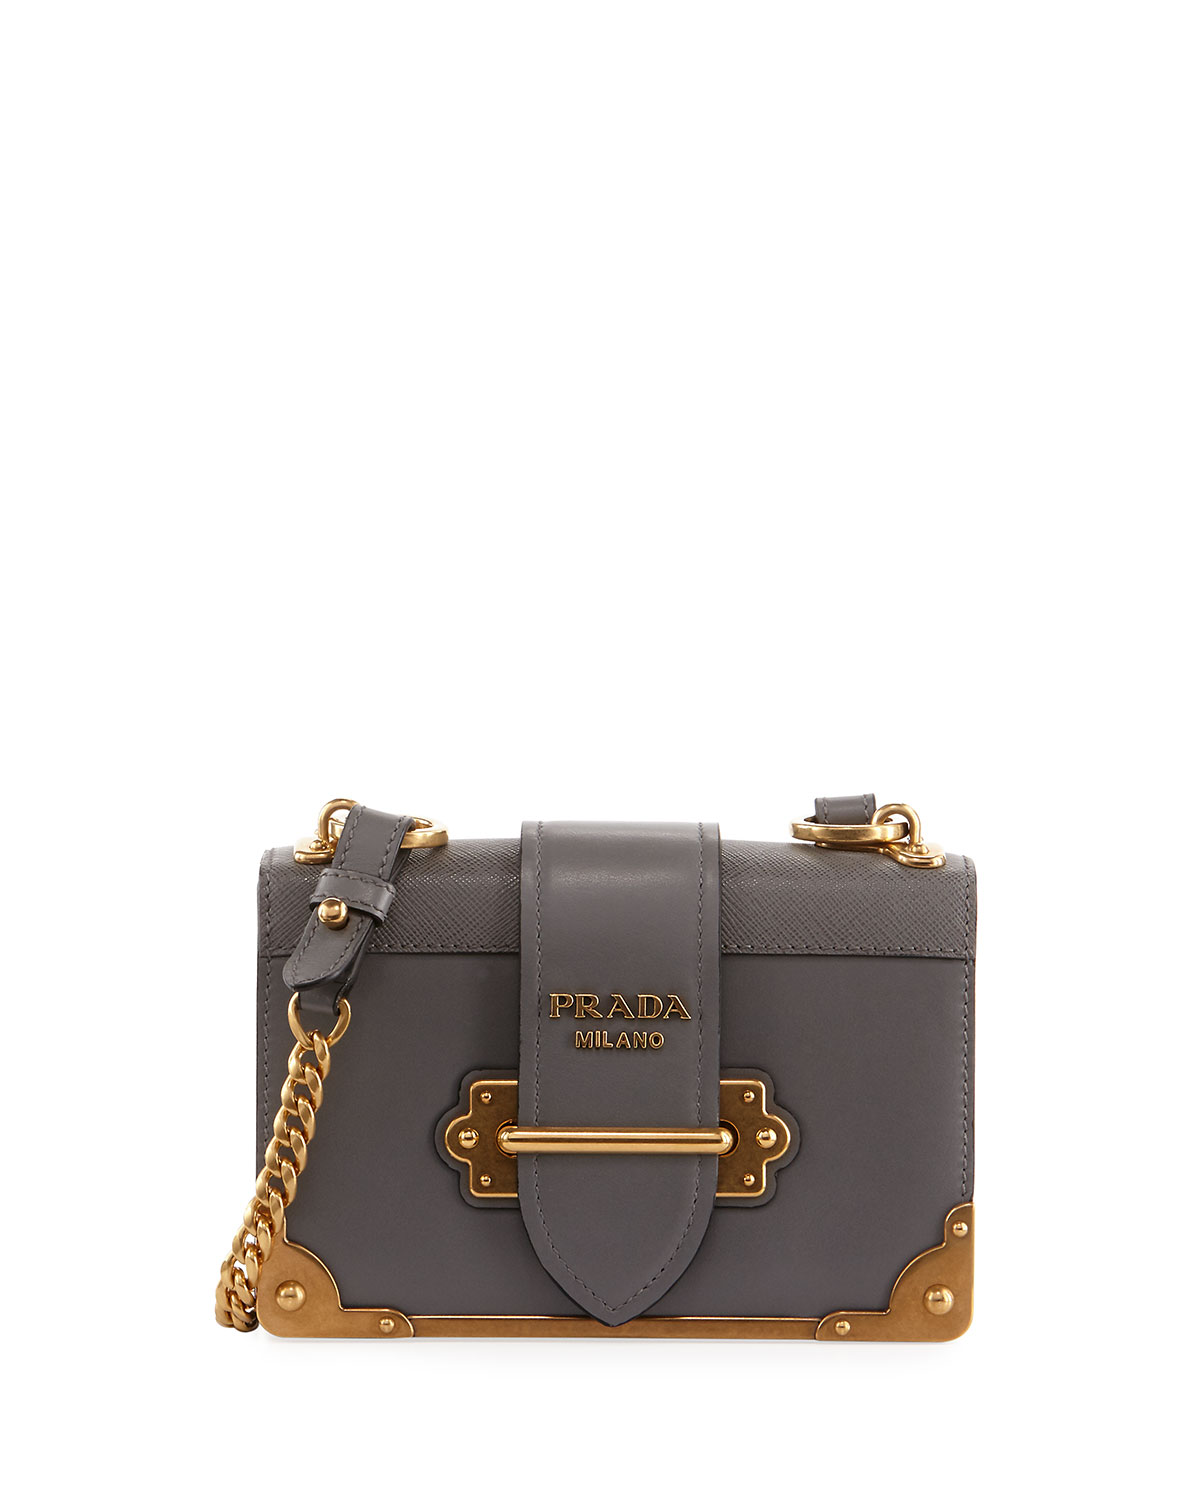 a7822a4559 Prada Cahier Small Leather Trunk Crossbody Bag